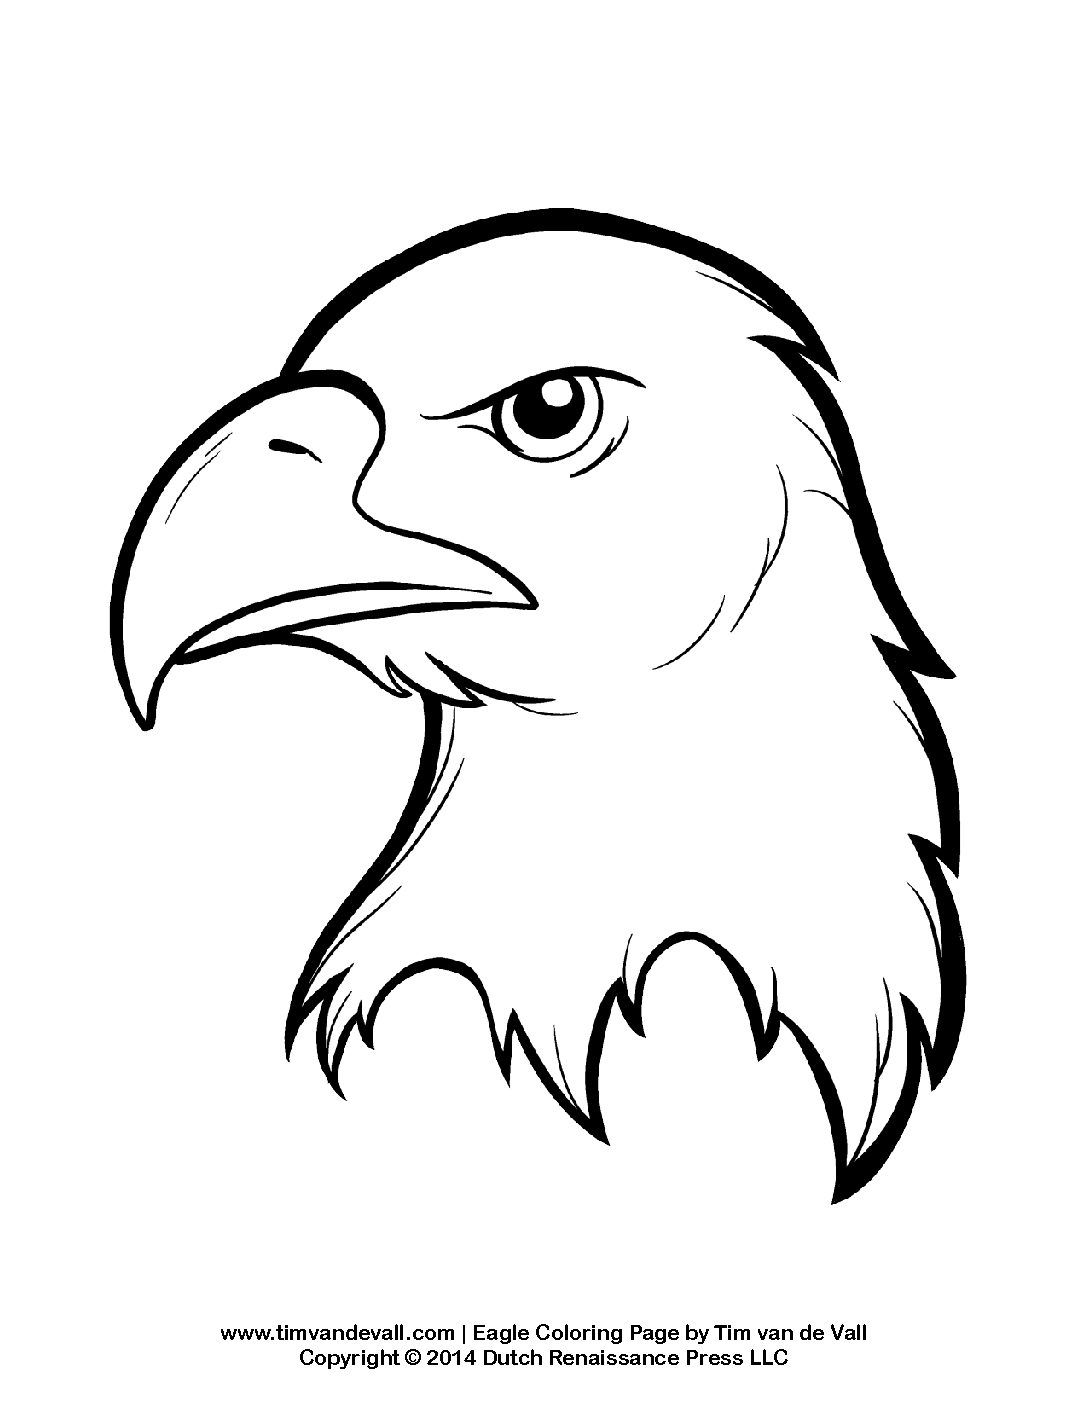 bald eagle coloring sheet bald eagle coloring pages download and print for free coloring bald eagle sheet